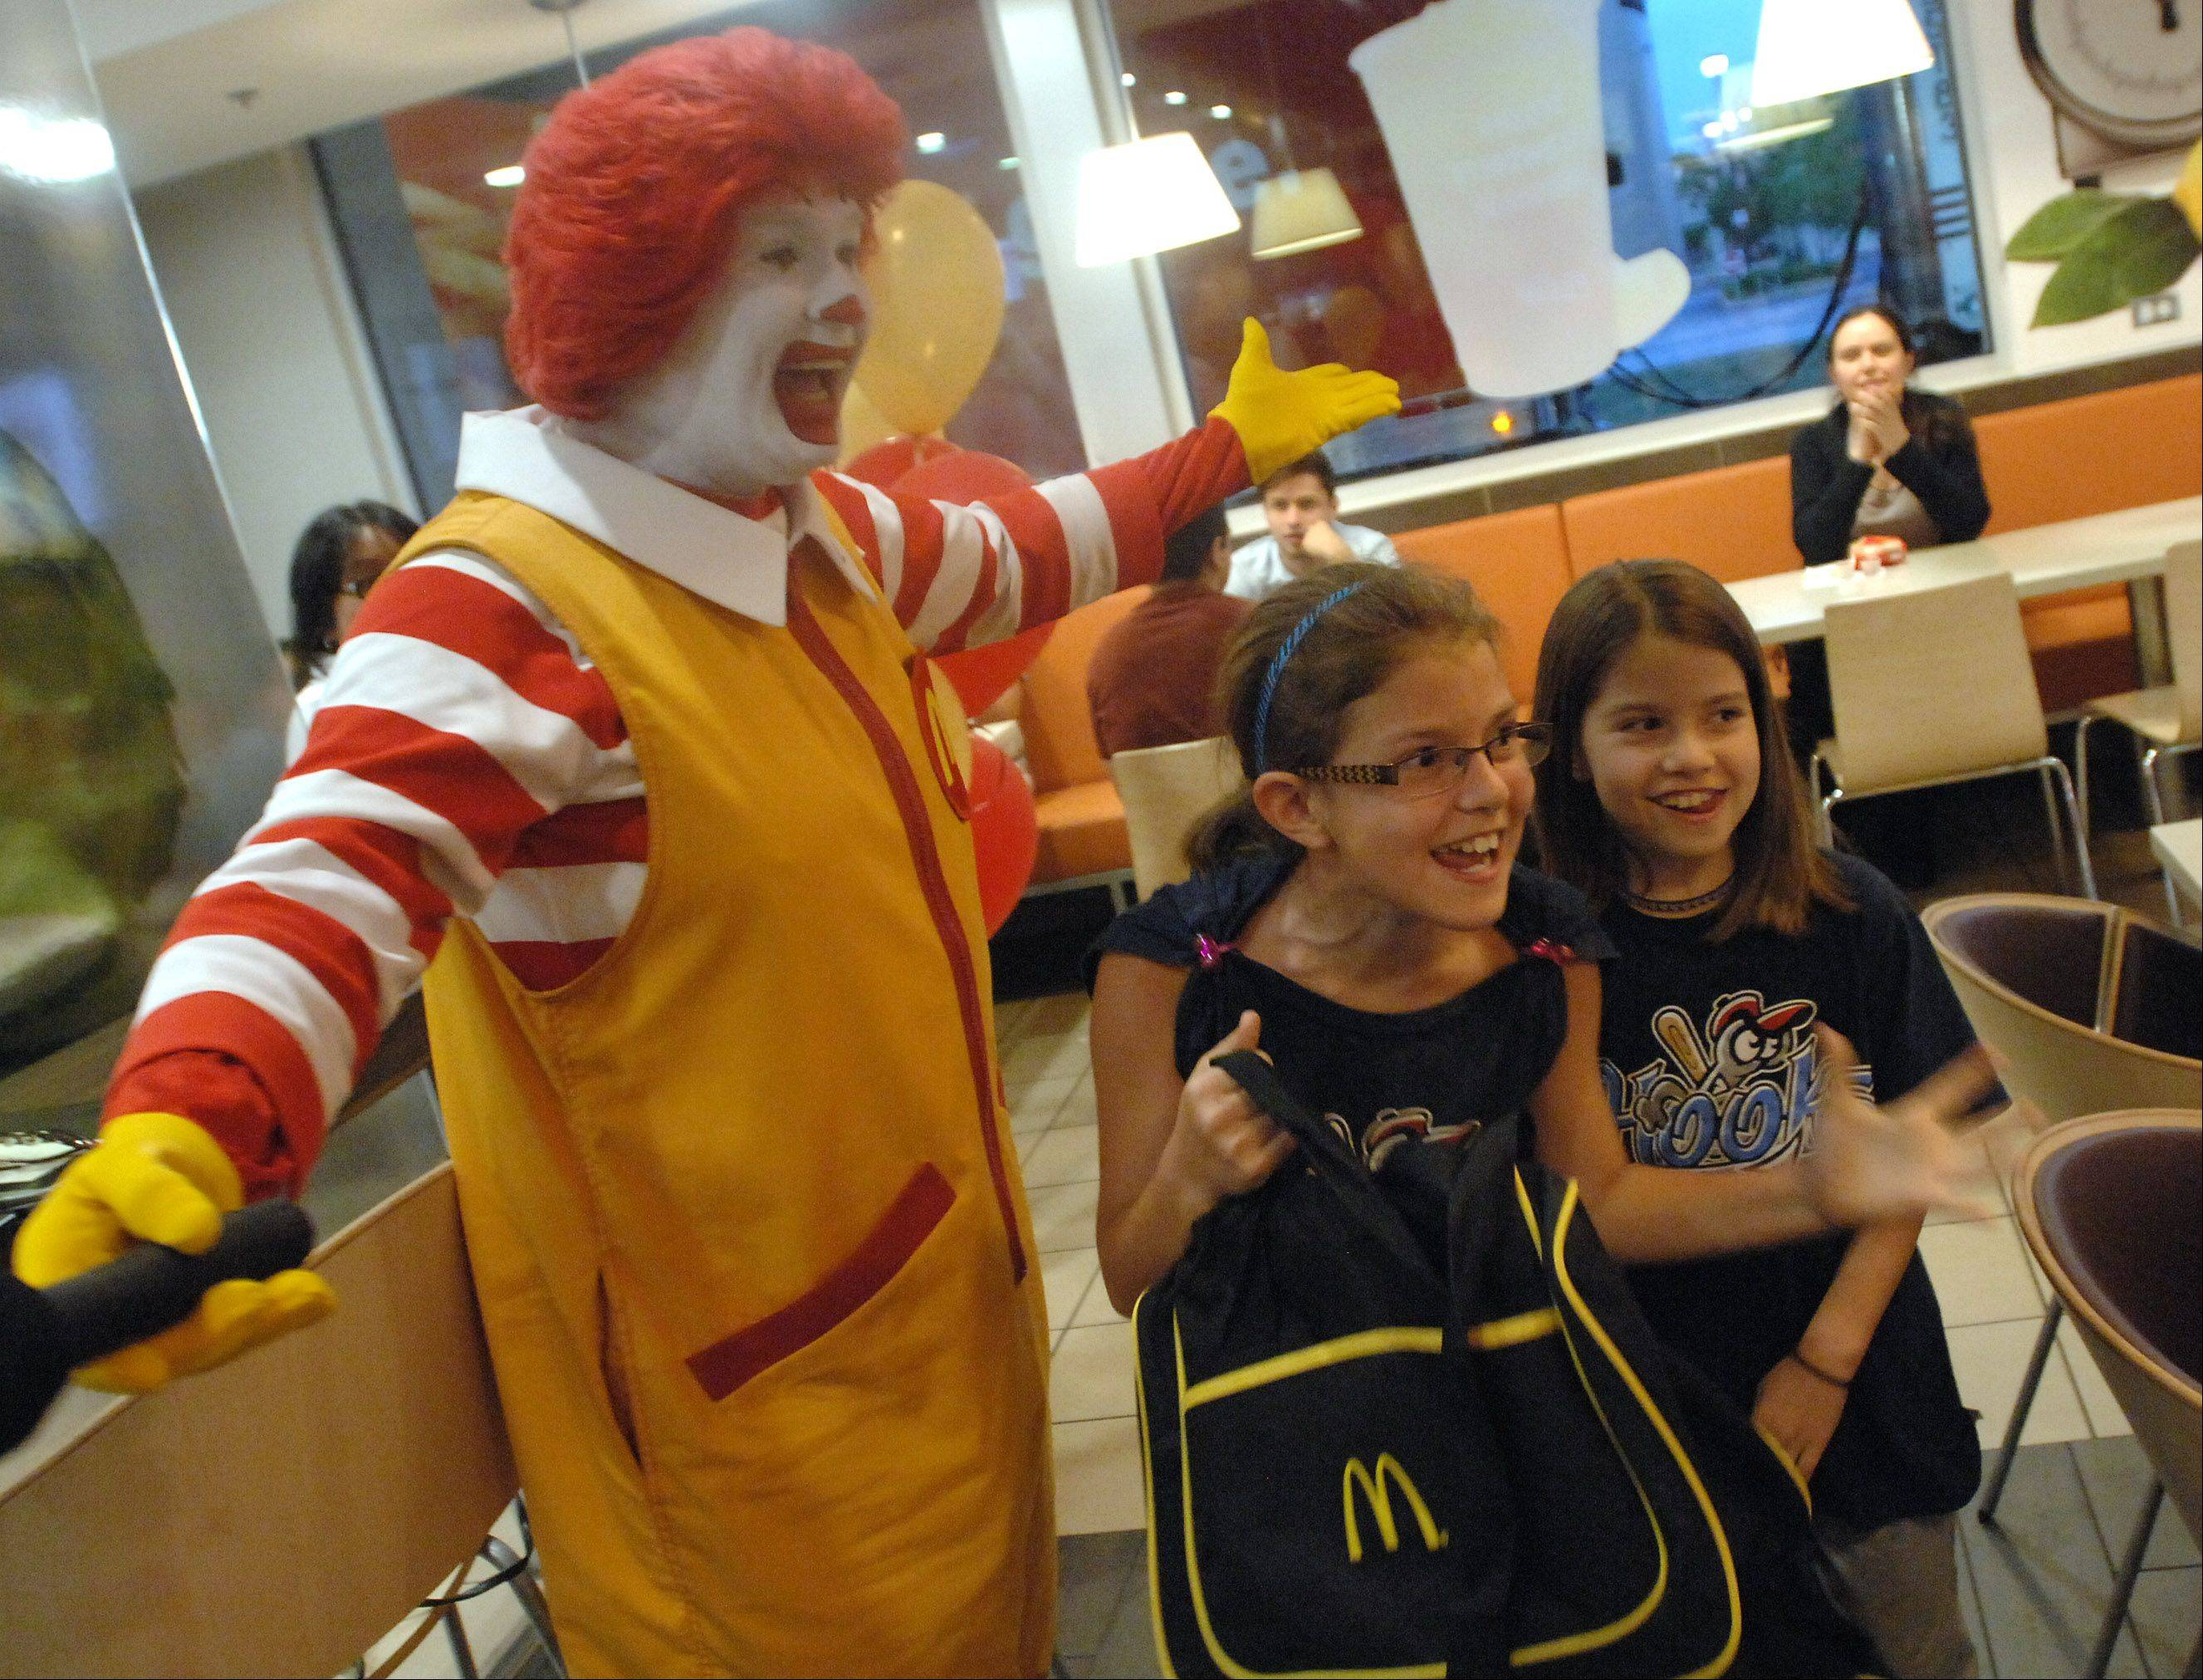 Katie, 8, and Liz O'Brien, 10, of Addison, react to the news they won a trip to the 2012 Olympic Games in London. The sisters took part in the McDonald's Happy Meal Chefs contest, for which they submitted a video demonstrating how they make mealtime fun and healthy.